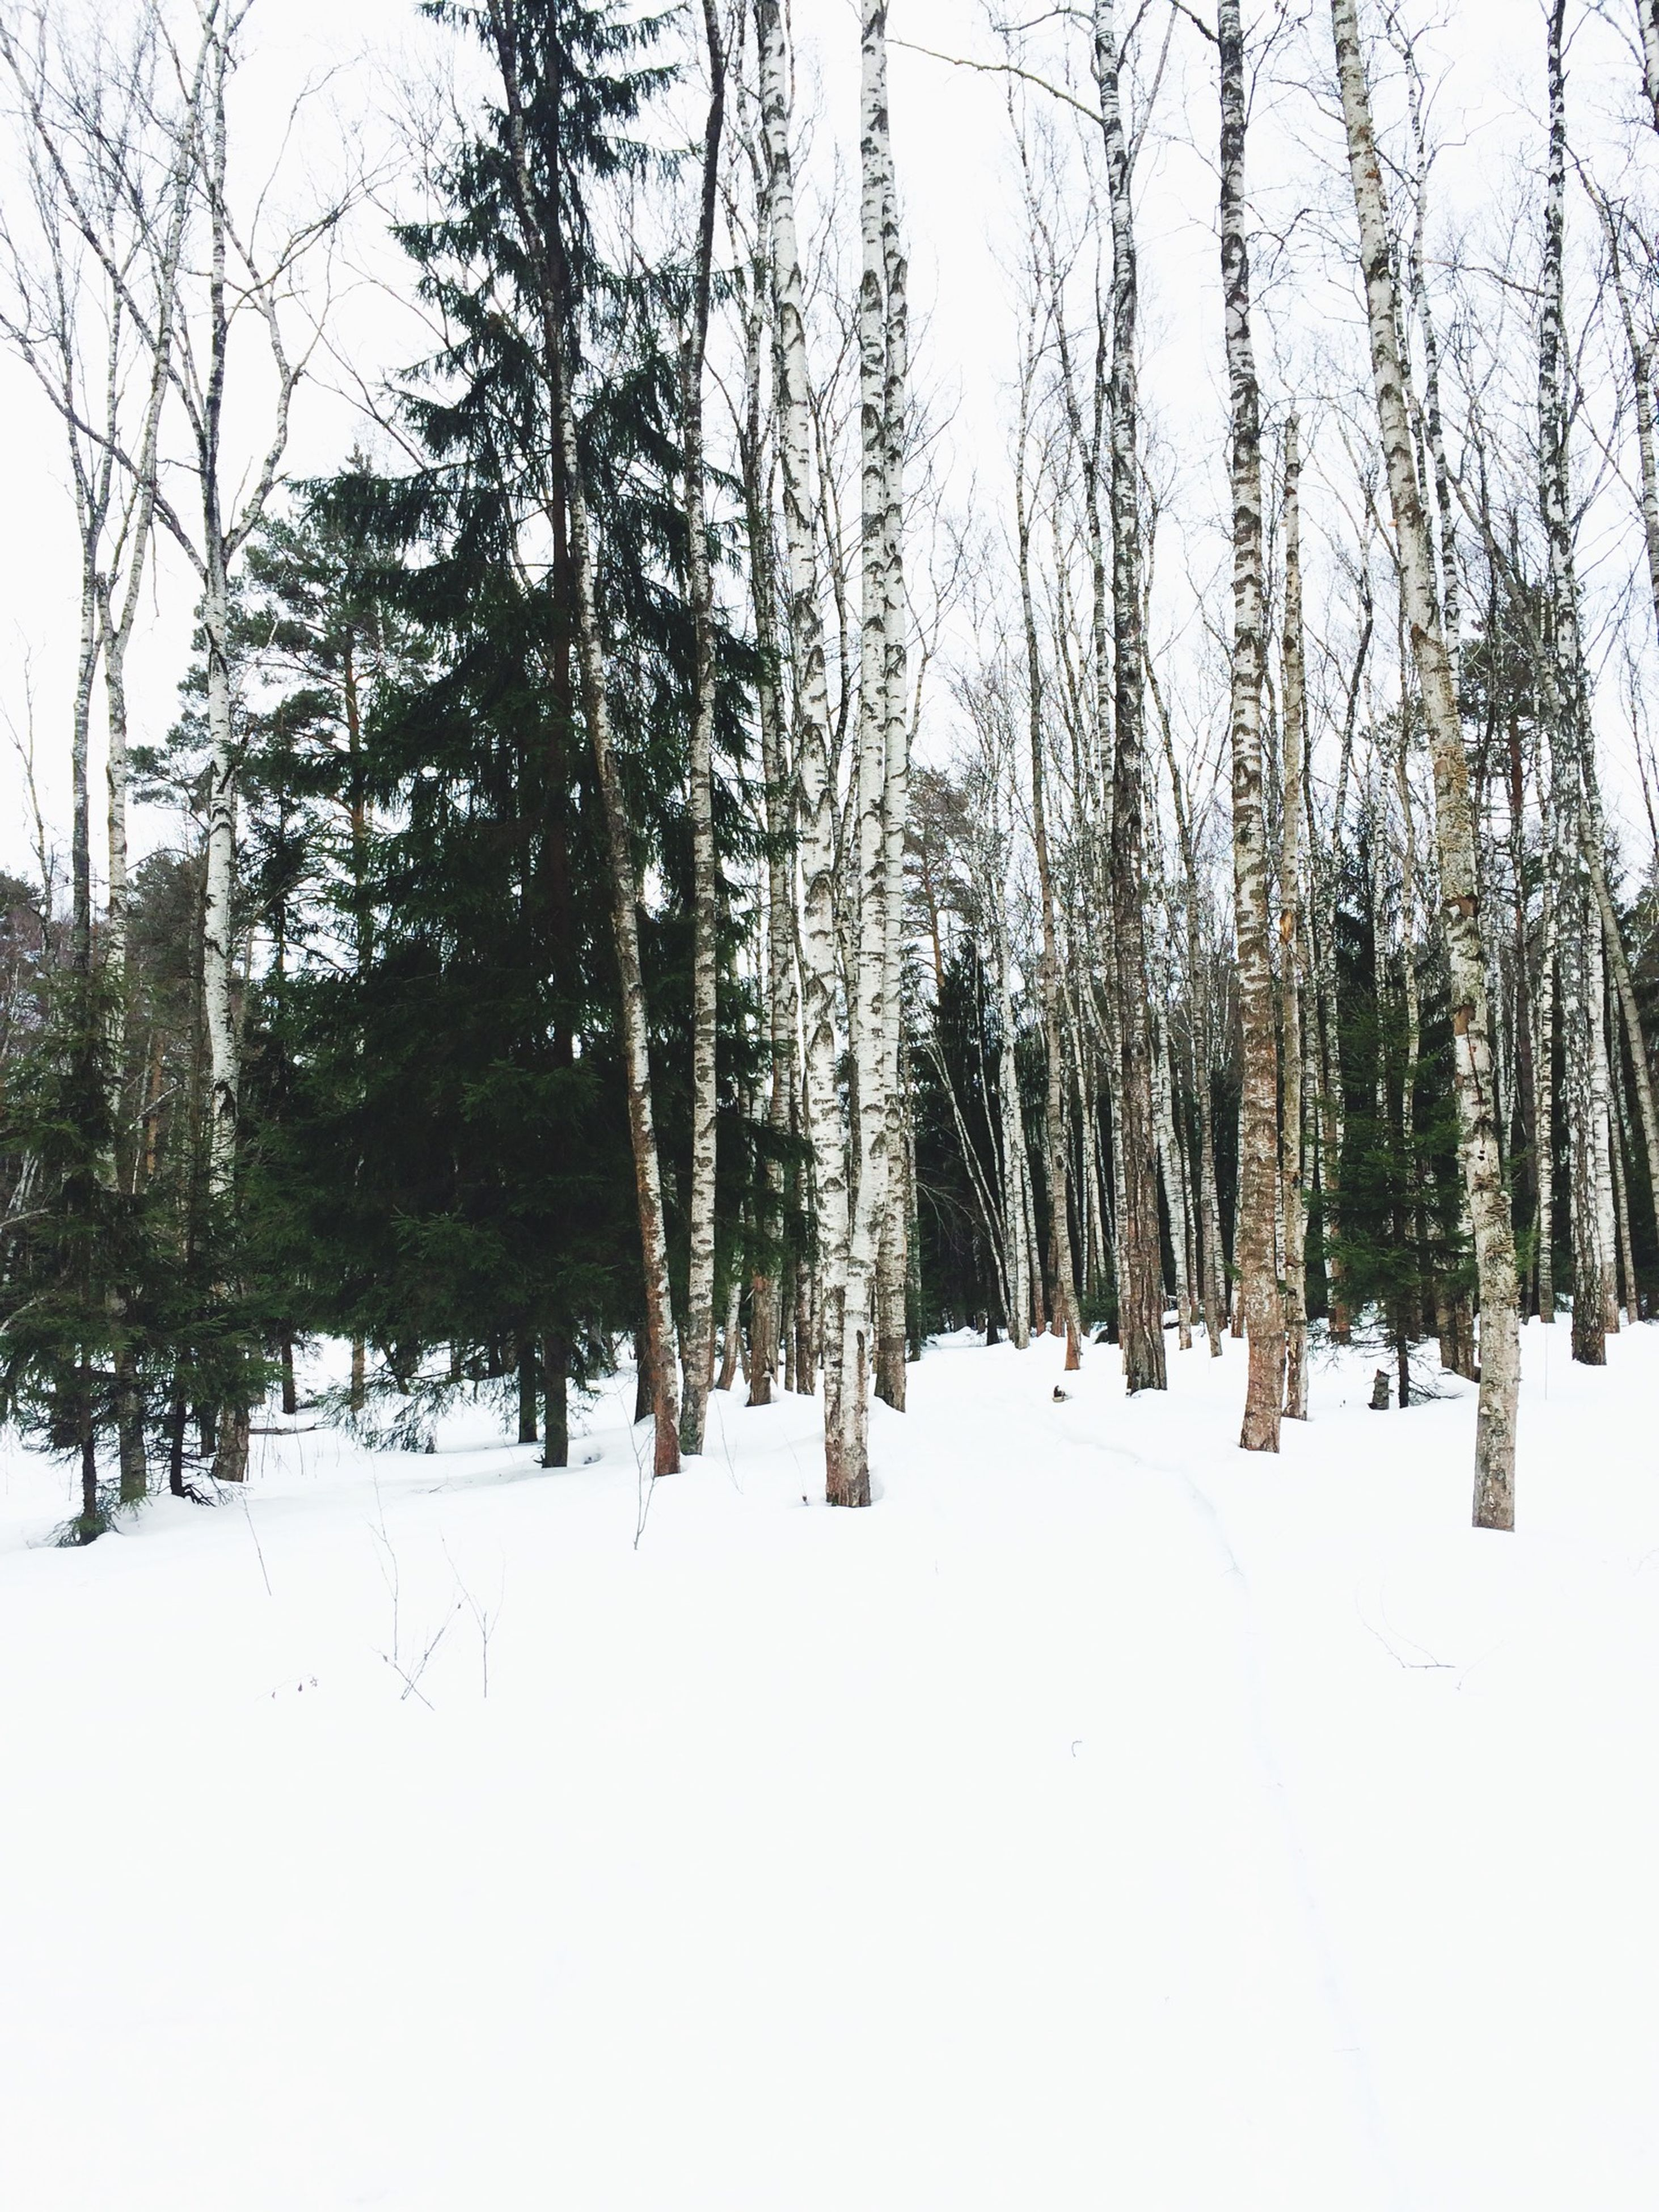 tree, cold temperature, winter, snow, nature, weather, tranquility, growth, day, beauty in nature, no people, branch, forest, outdoors, landscape, birch tree, sky